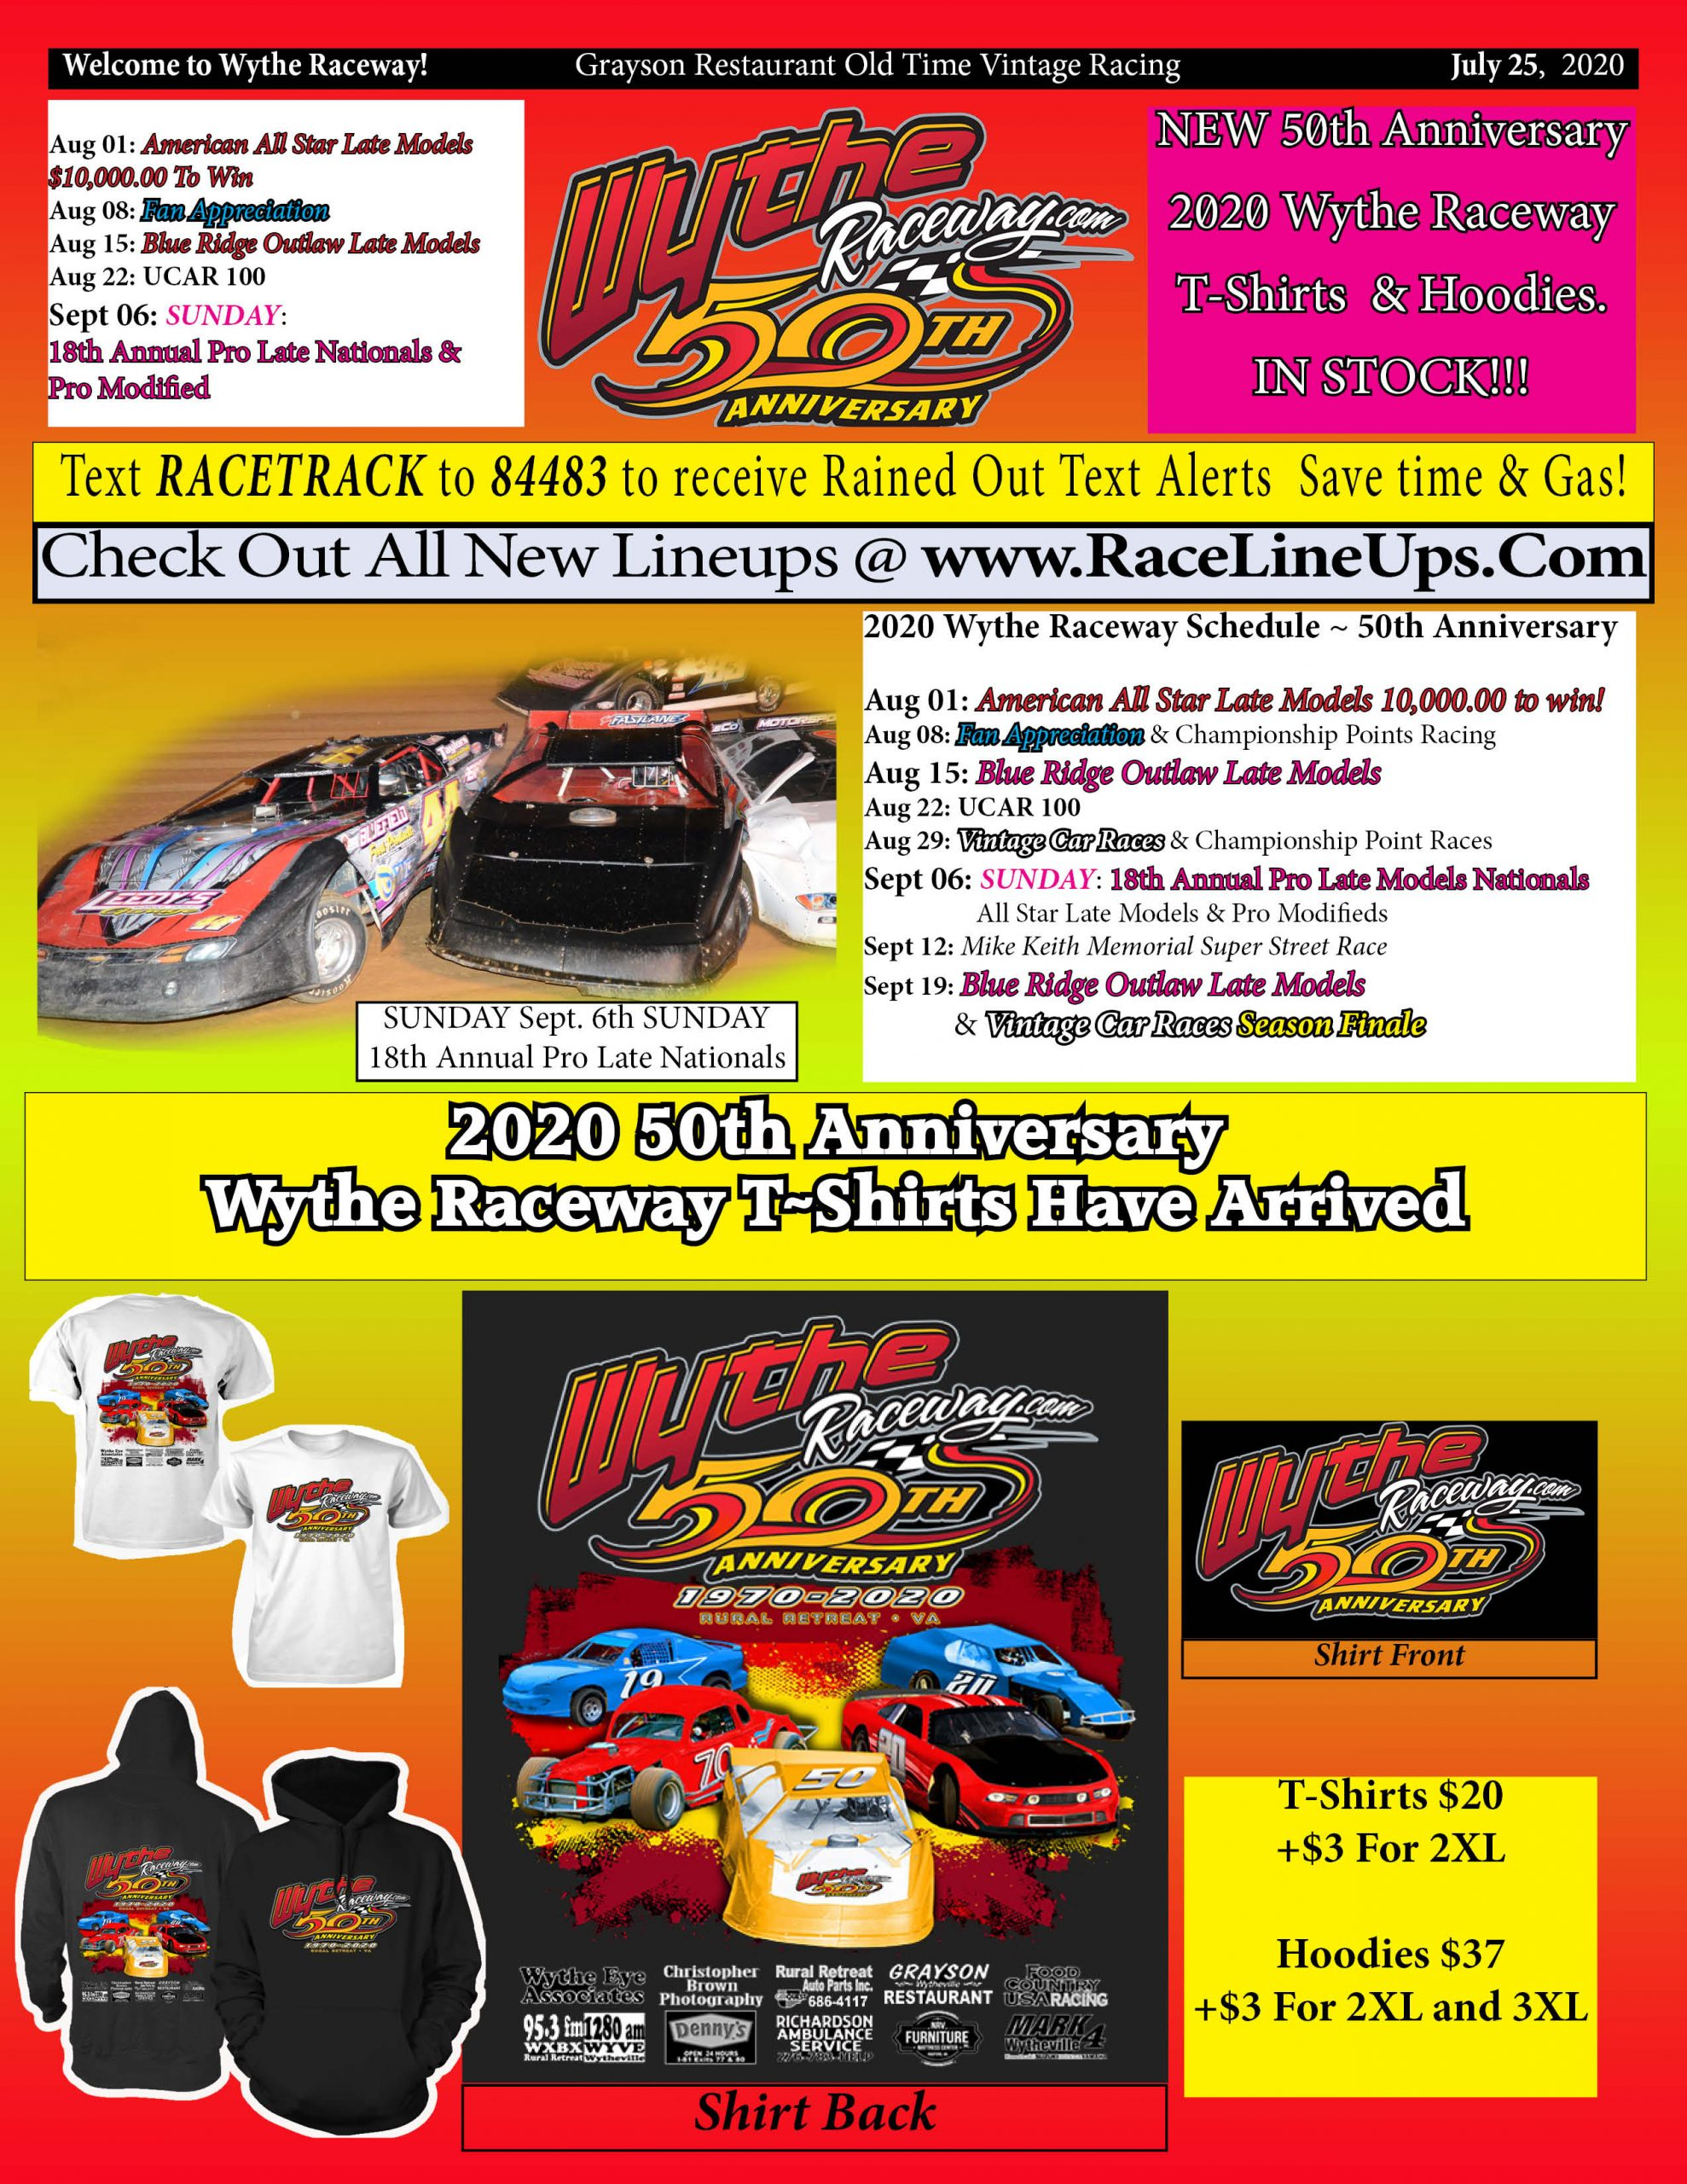 Grayson Restaurant Old Time Vintage Racing ~ Schedule of Events